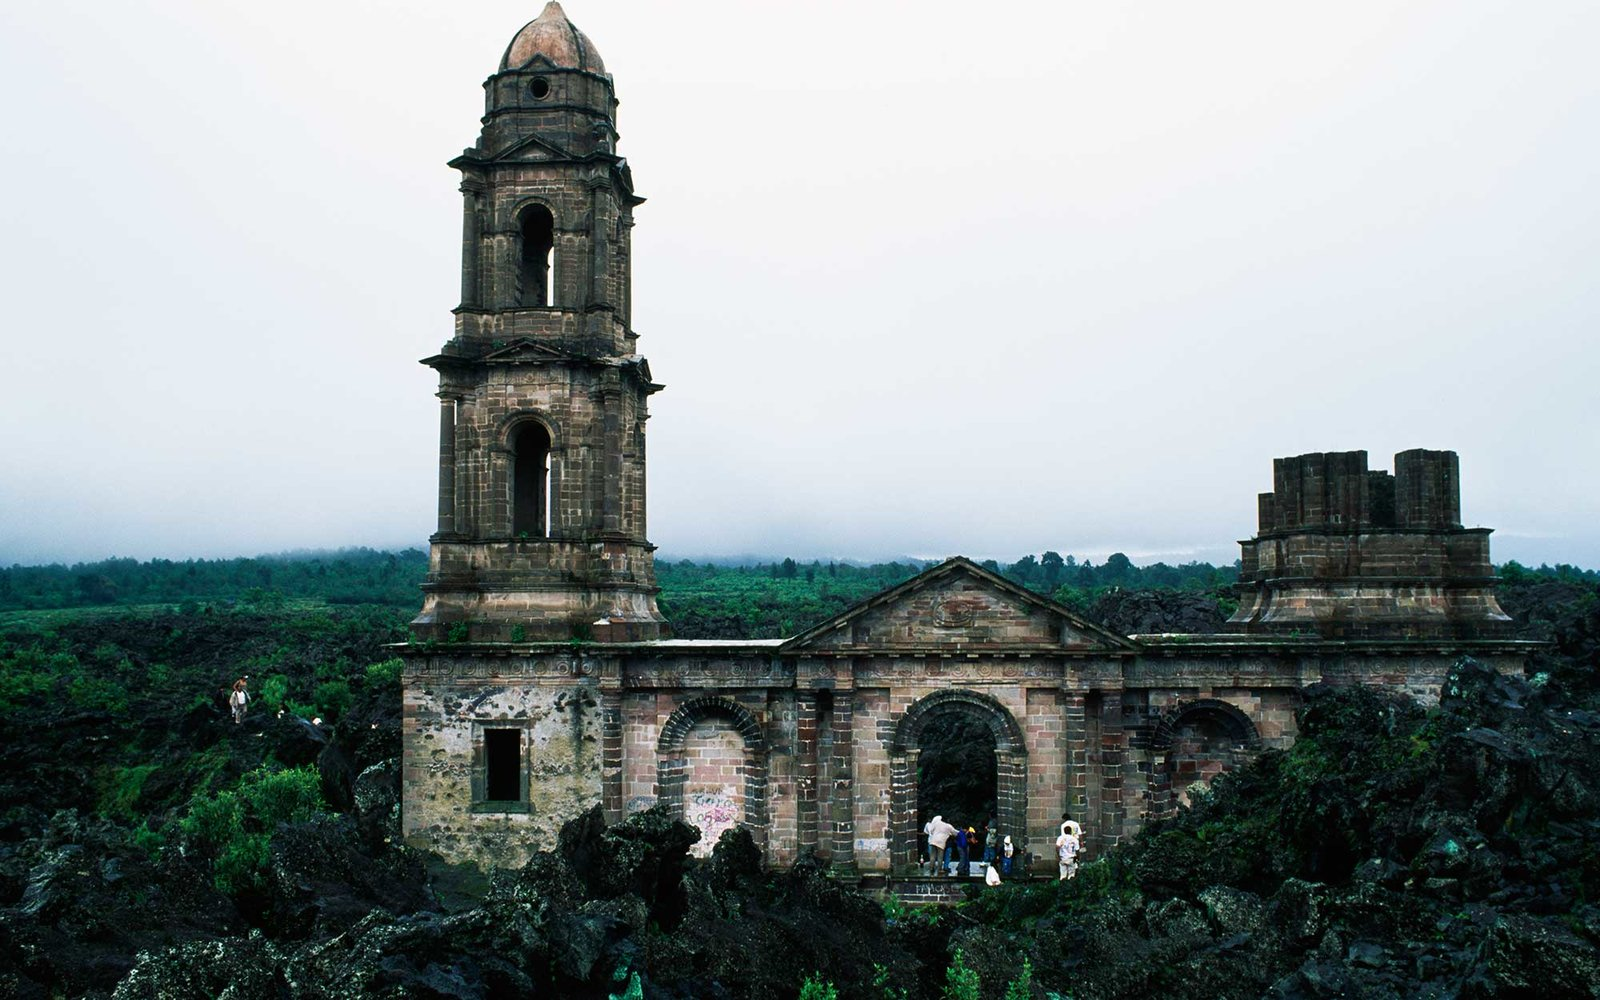 MEXICO - FEBRUARY 16: The church of San Juan Parangaricutiro, almost buried by lava in 1943 during the Paricutin volcano eruption, Michoacan, Mexico. (Photo by DeAgostini/Getty Images)